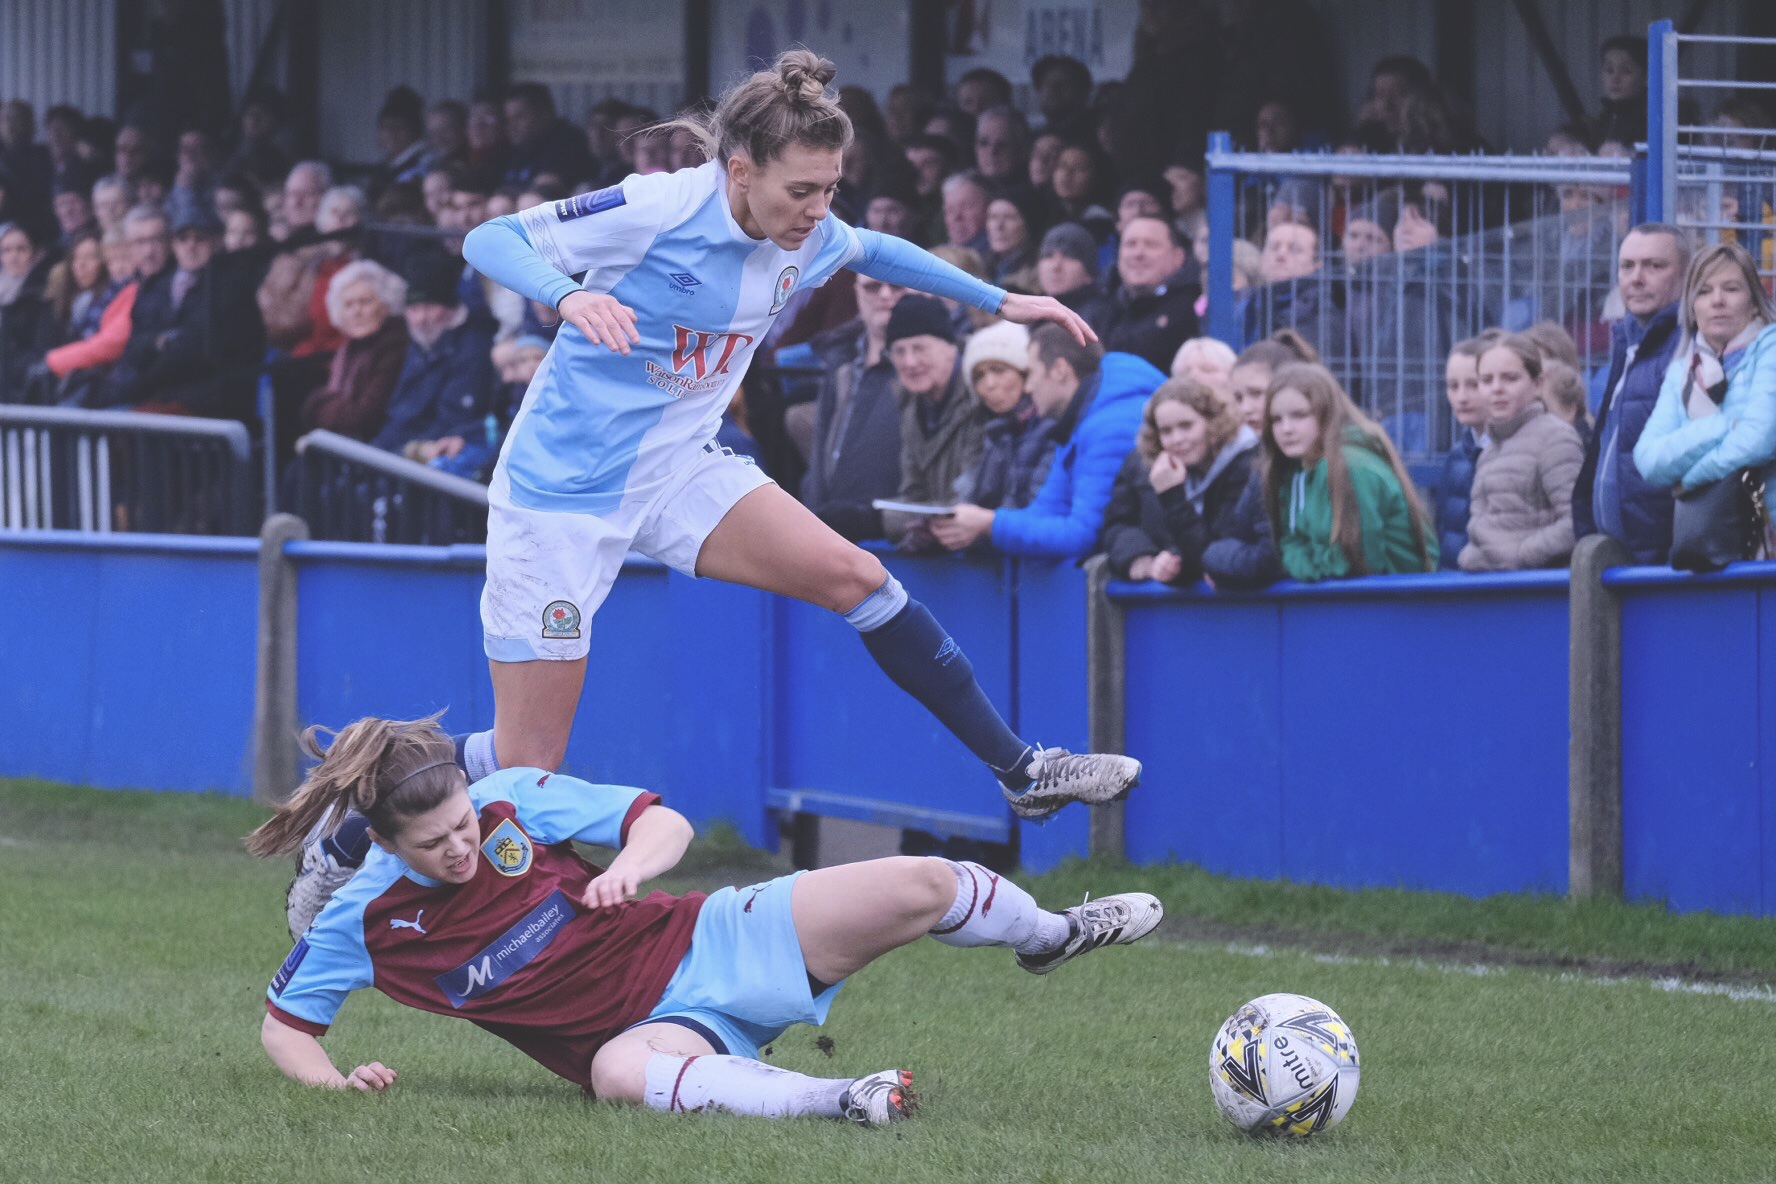 Lagan Makin in action for Rovers. Photo: @RoversLadies